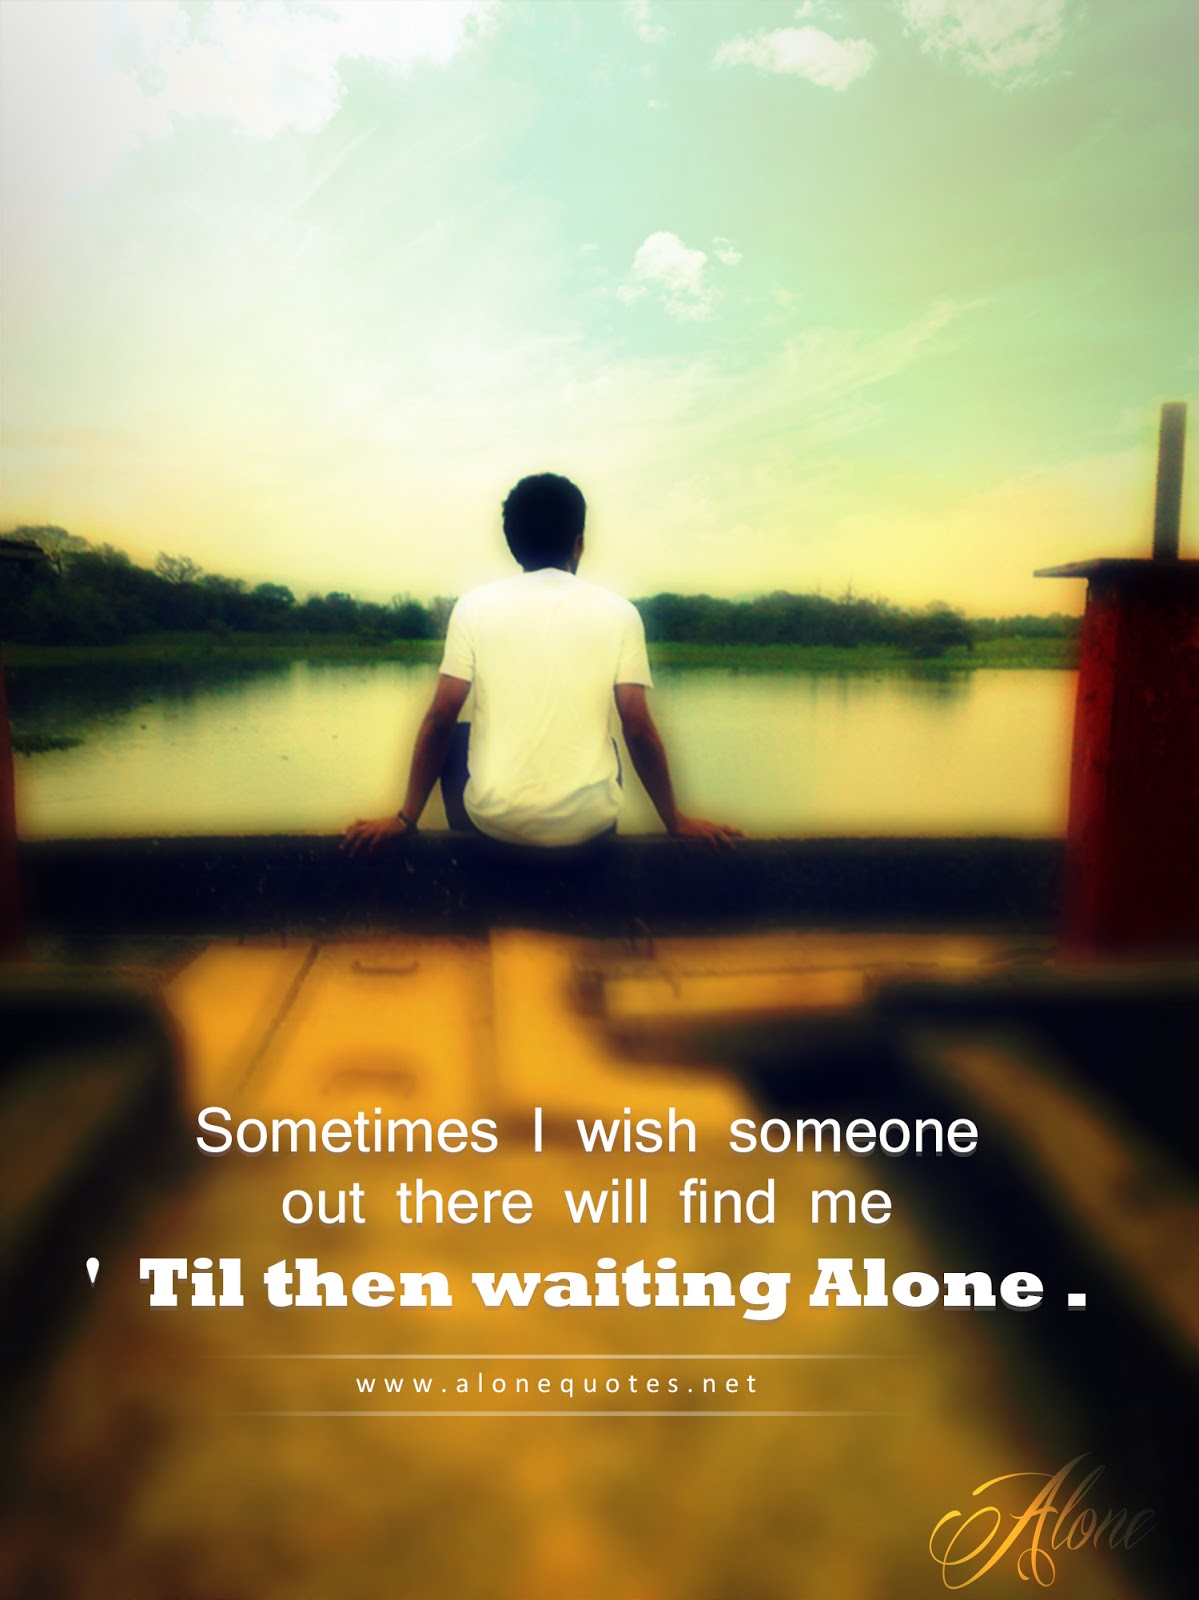 Alone Boy wallpaper Full quality HD wallpapers 1199x1600